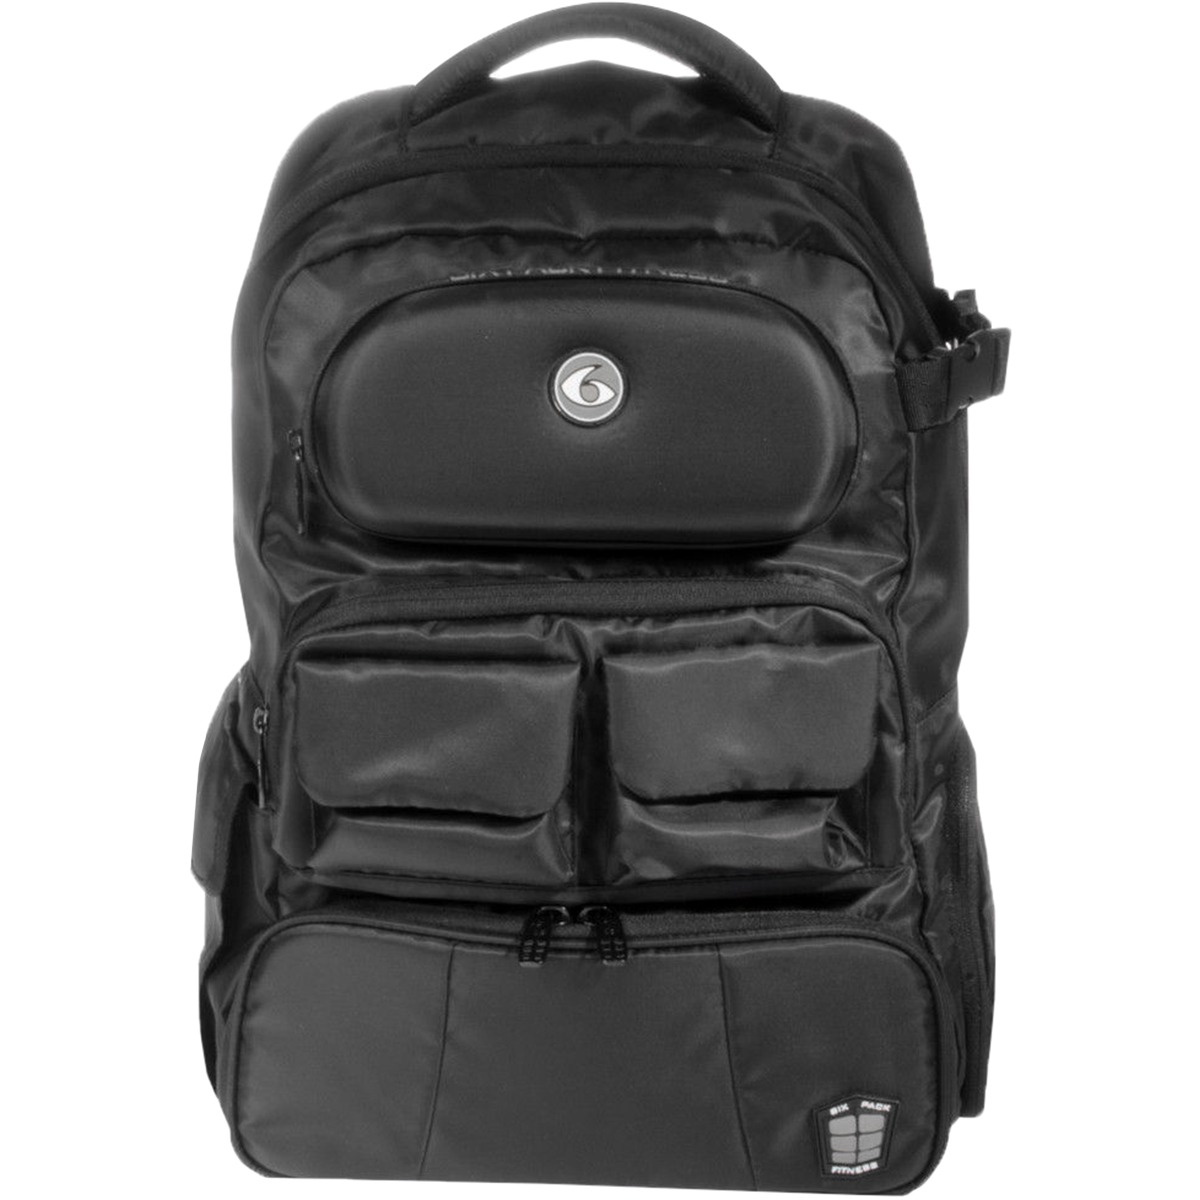 Details about 6 Pack Fitness Mach 6 Athletic Backpack - Stealth Black